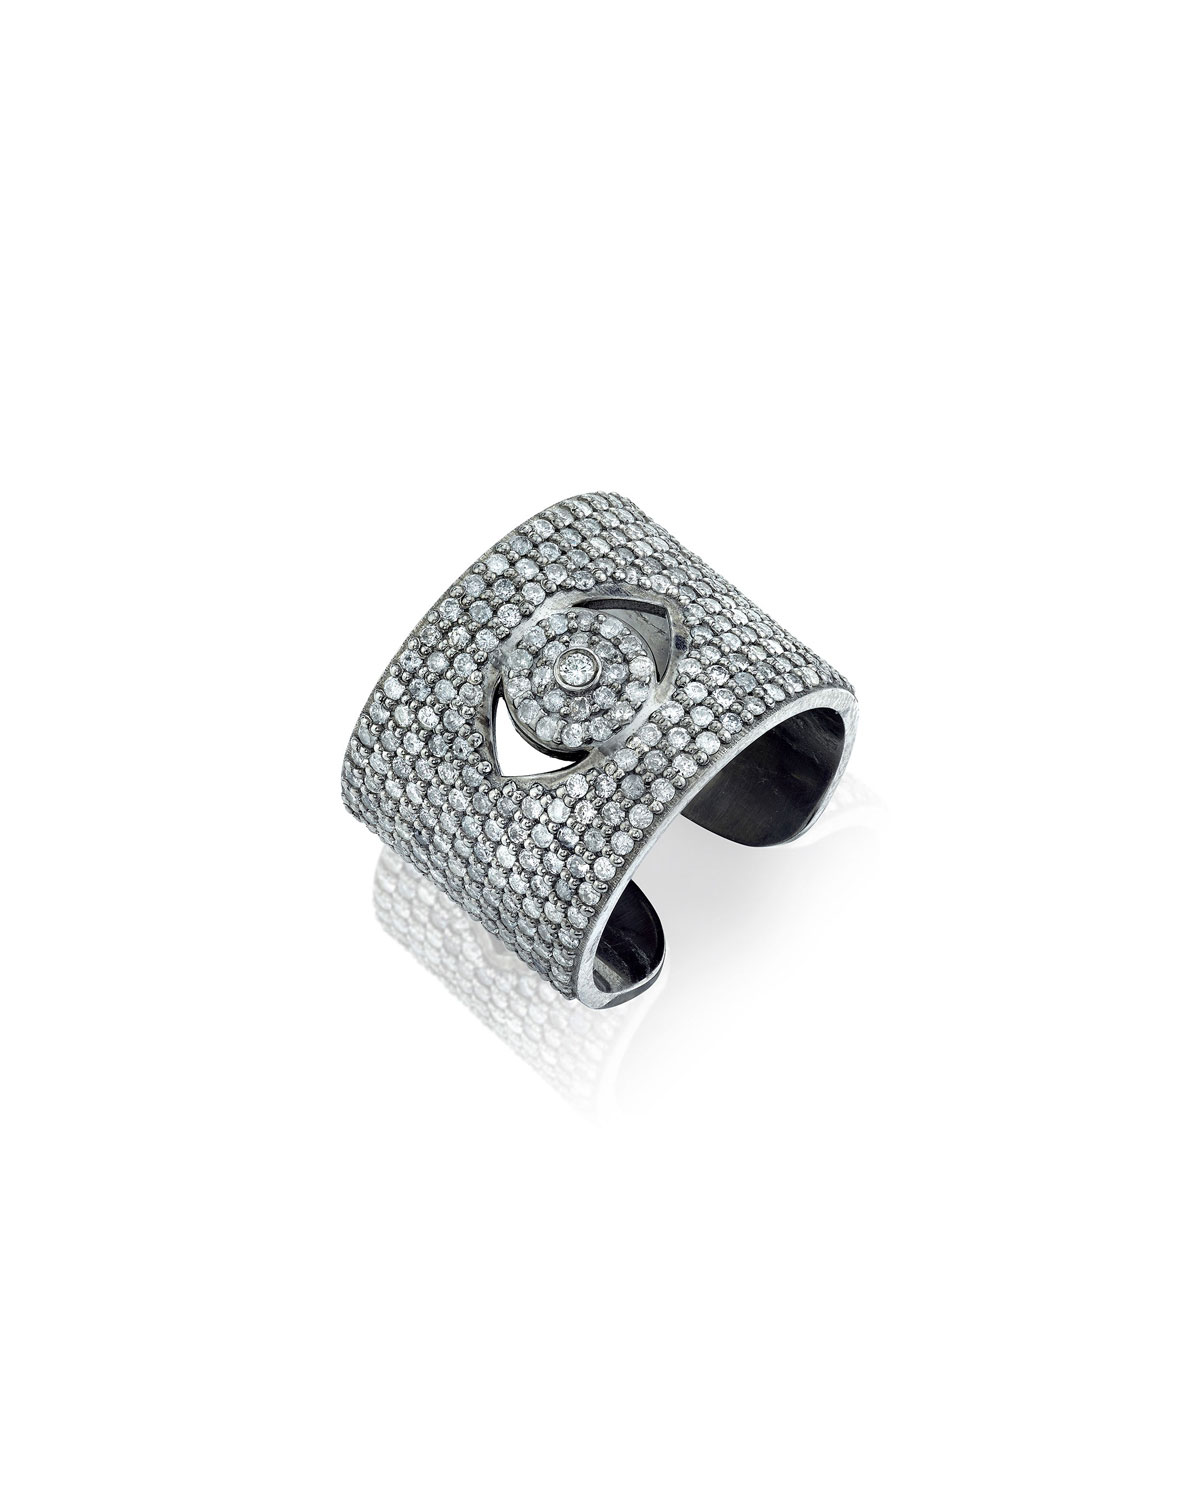 Sheryl Lowe Diamond Evil Eye Cuff Ring, Size 7